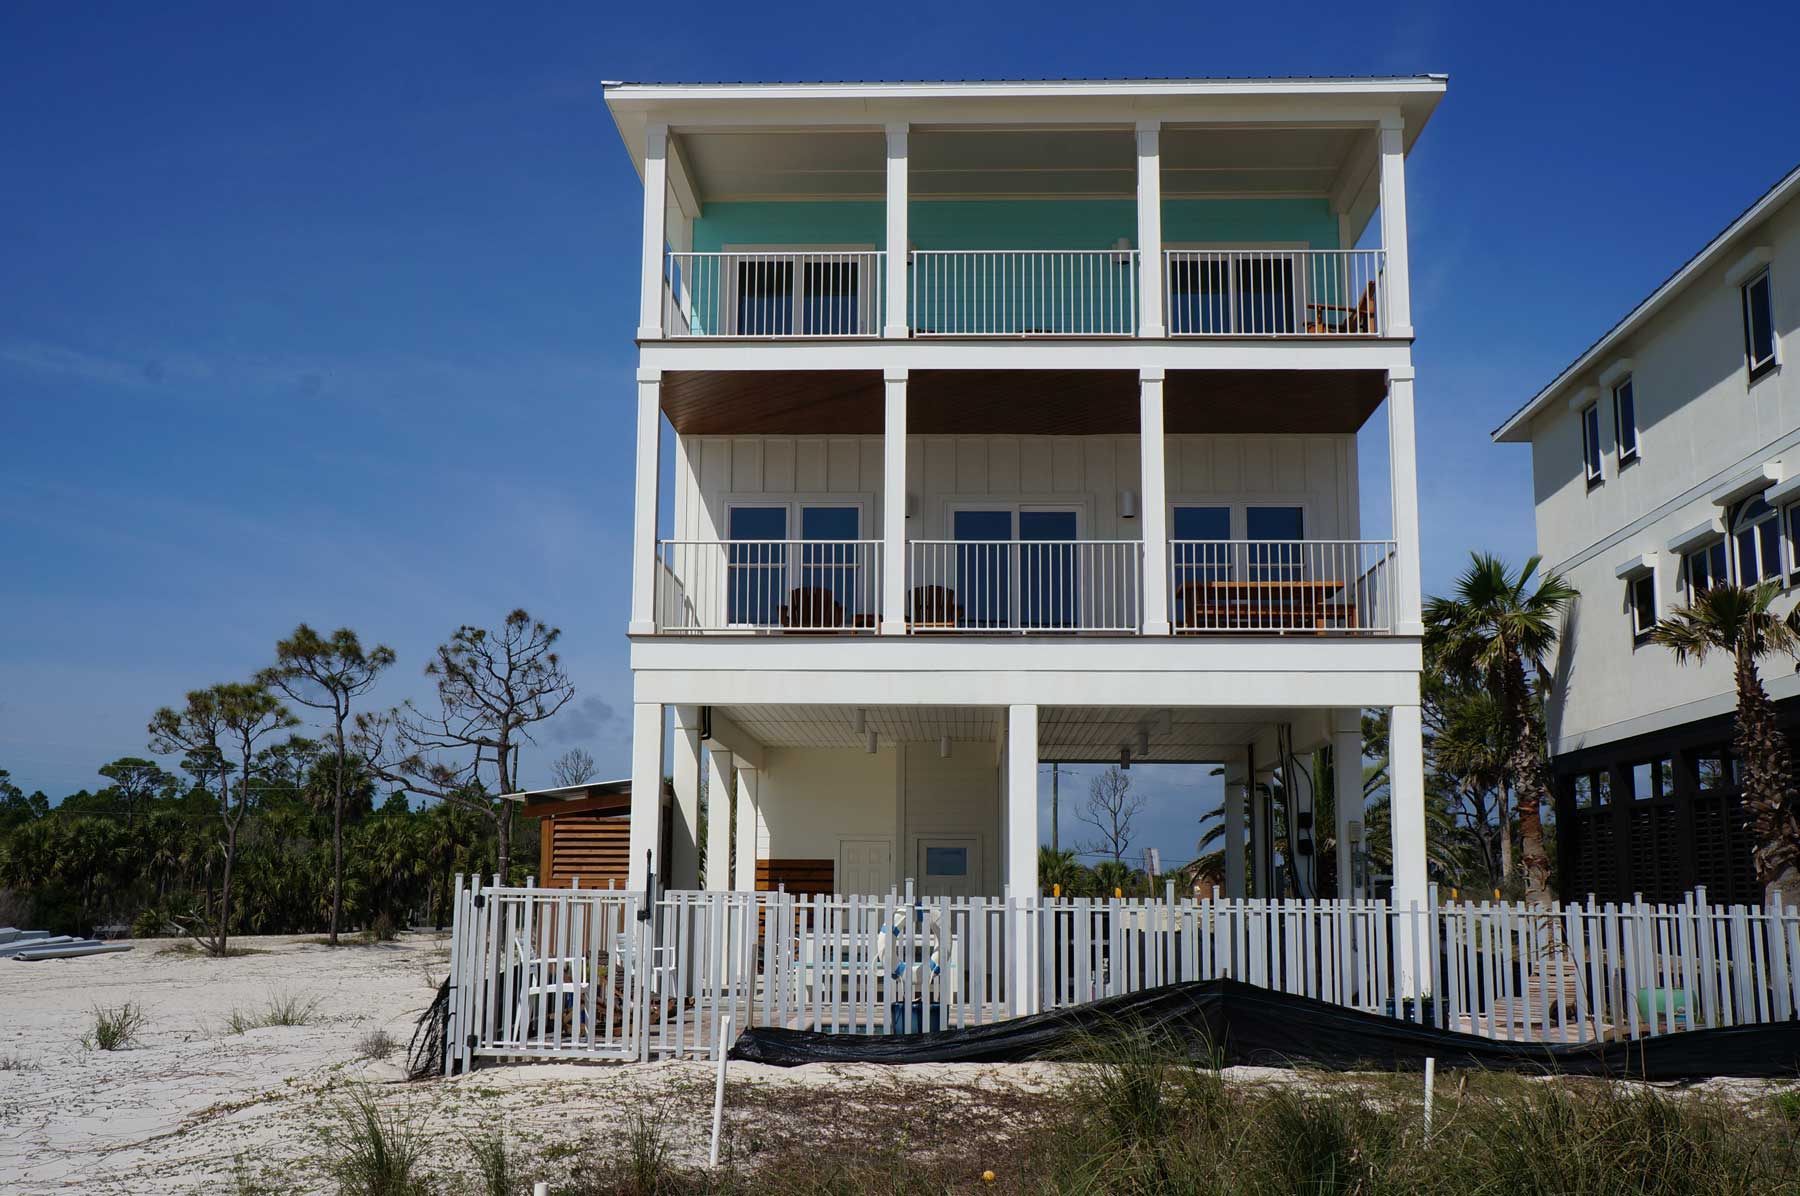 Exterior view of three story home nearing completion by our Mexico Beach FL home builders.